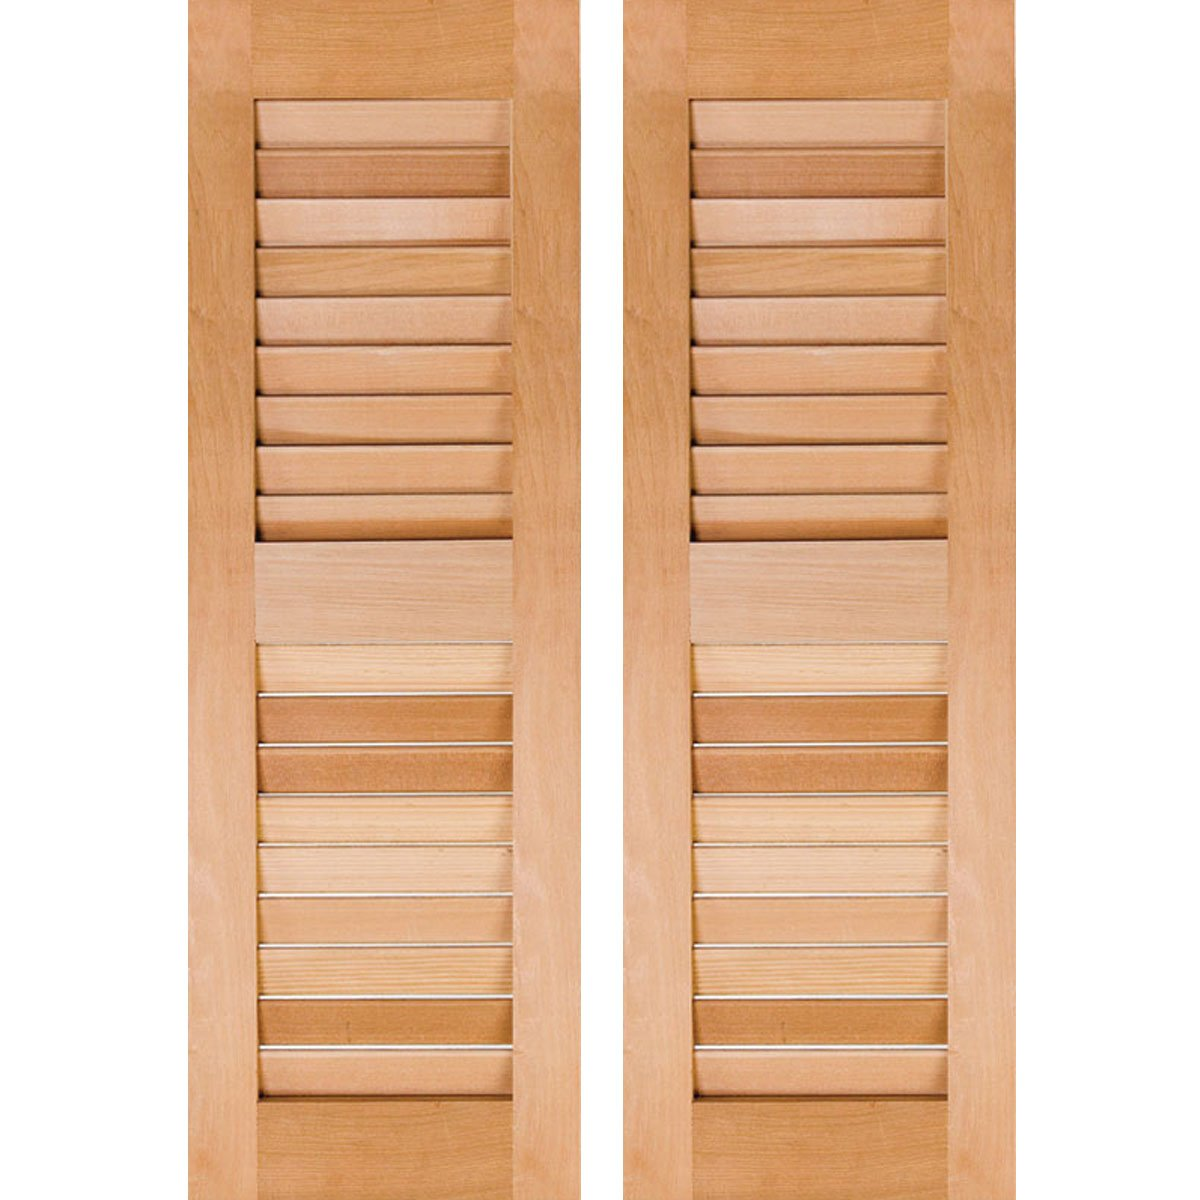 Ekena Millwork RWL15X026UNP Exterior Real Wood Pine Louvered Shutters (Per Pair), Unfinished, 15